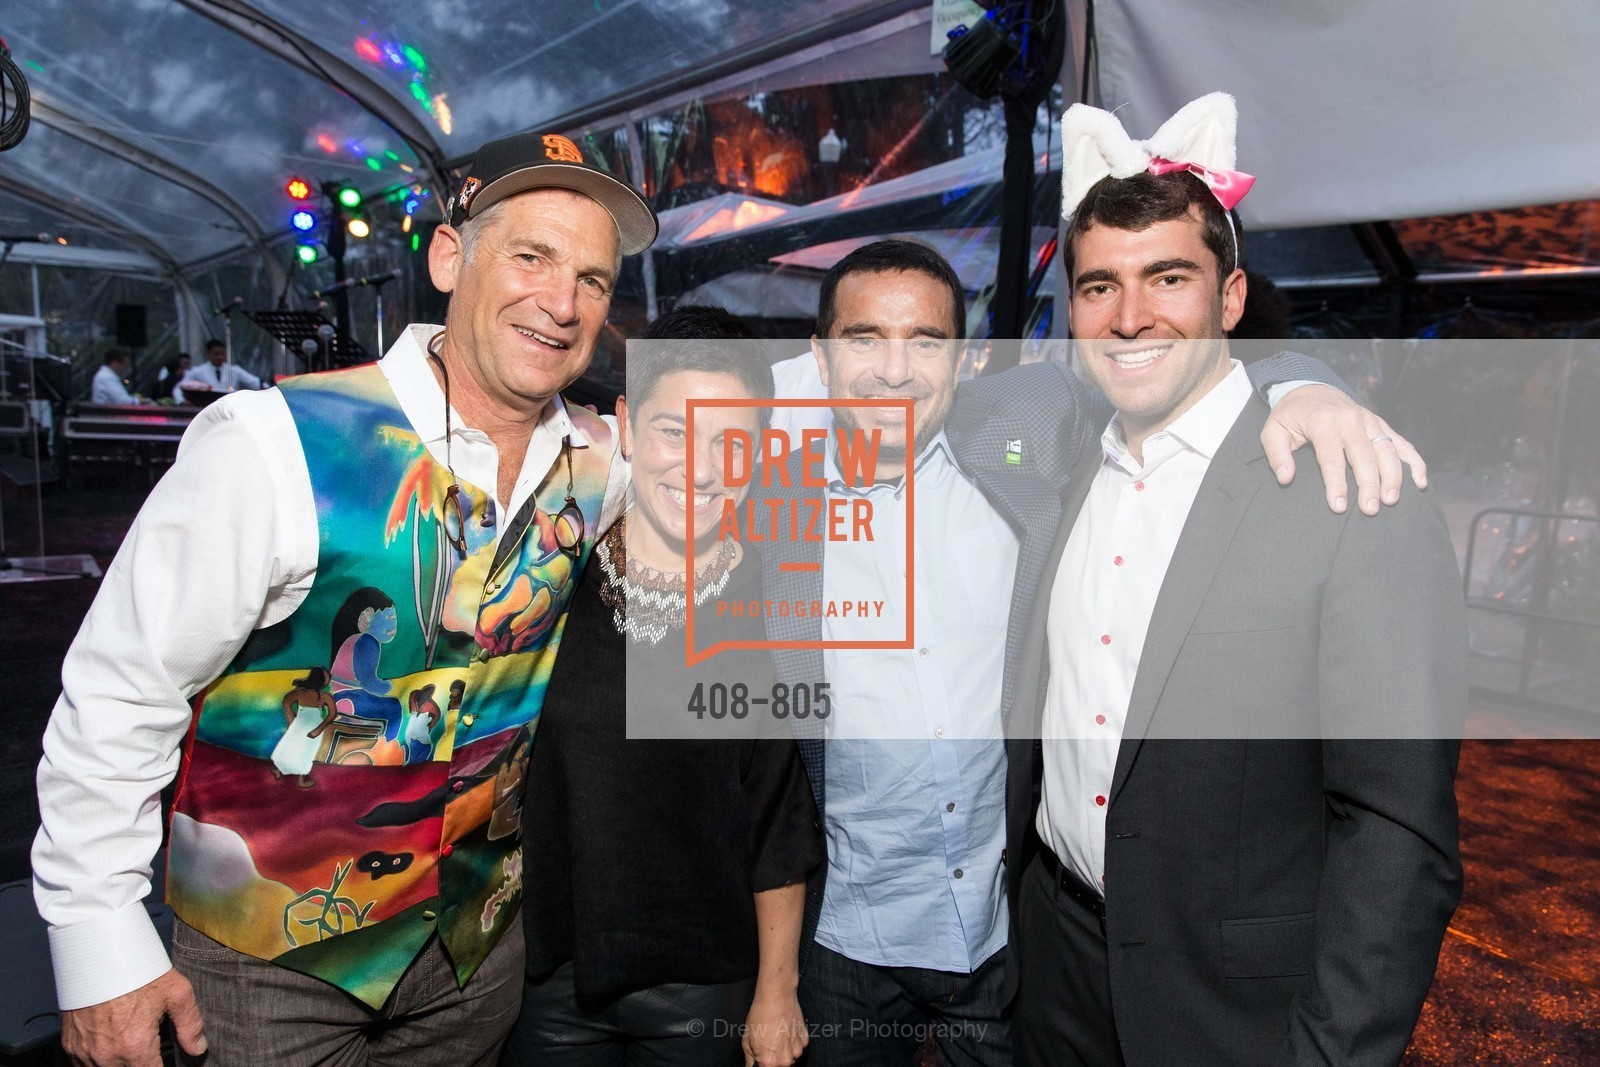 Donny Friend, Emily Ginsburg, Phil Ginsburg, Jason Friend, ZOOFEST 2015, US, April 26th, 2015,Drew Altizer, Drew Altizer Photography, full-service event agency, private events, San Francisco photographer, photographer California